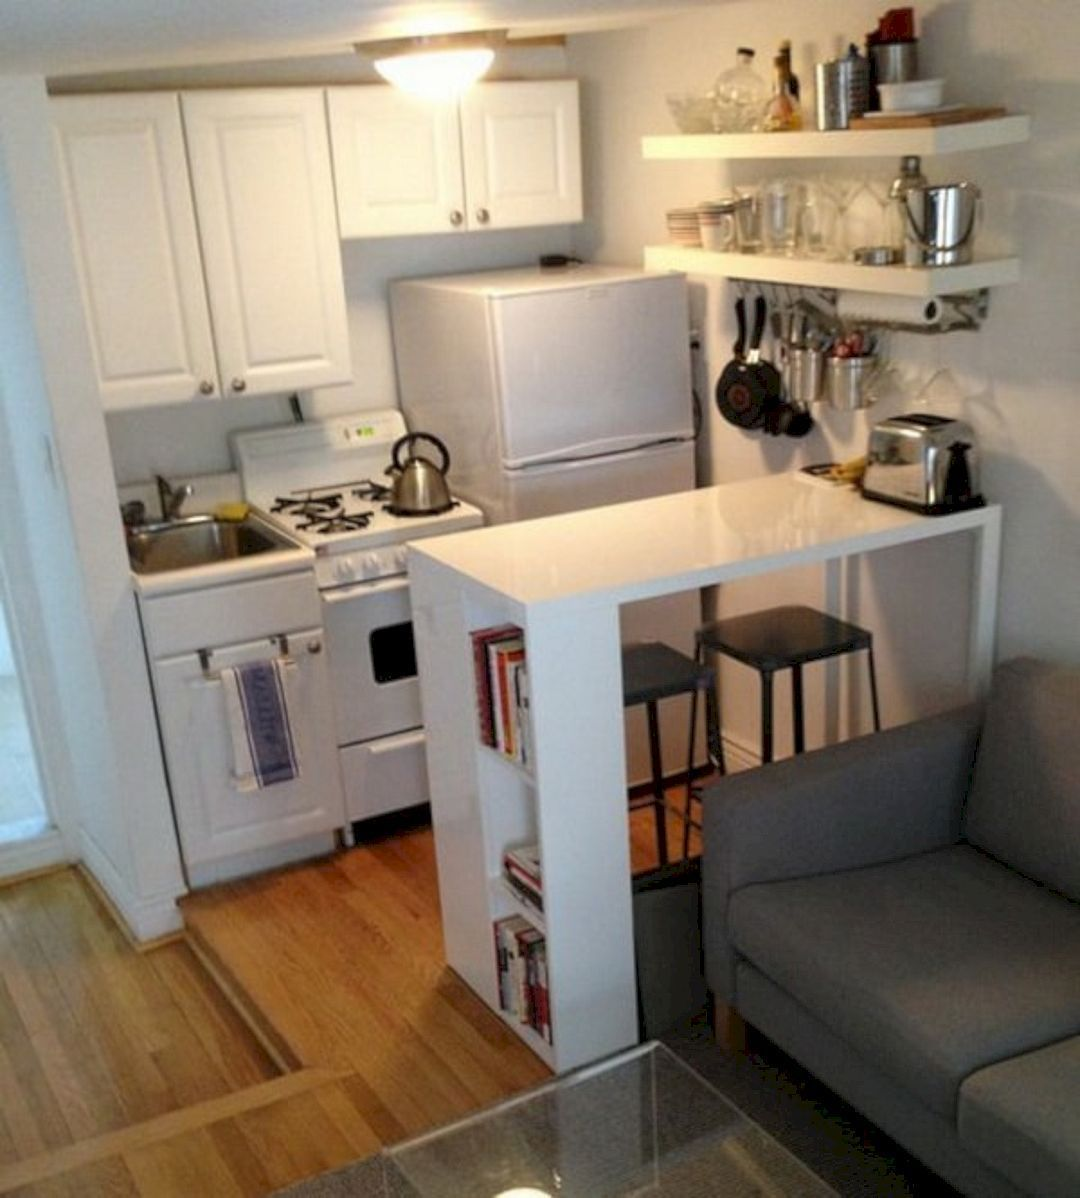 A Guide To Efficient Small Kitchen Design For Apartment Small Apartment Kitchen Small Kitchen Solutions Small Apartment Decorating